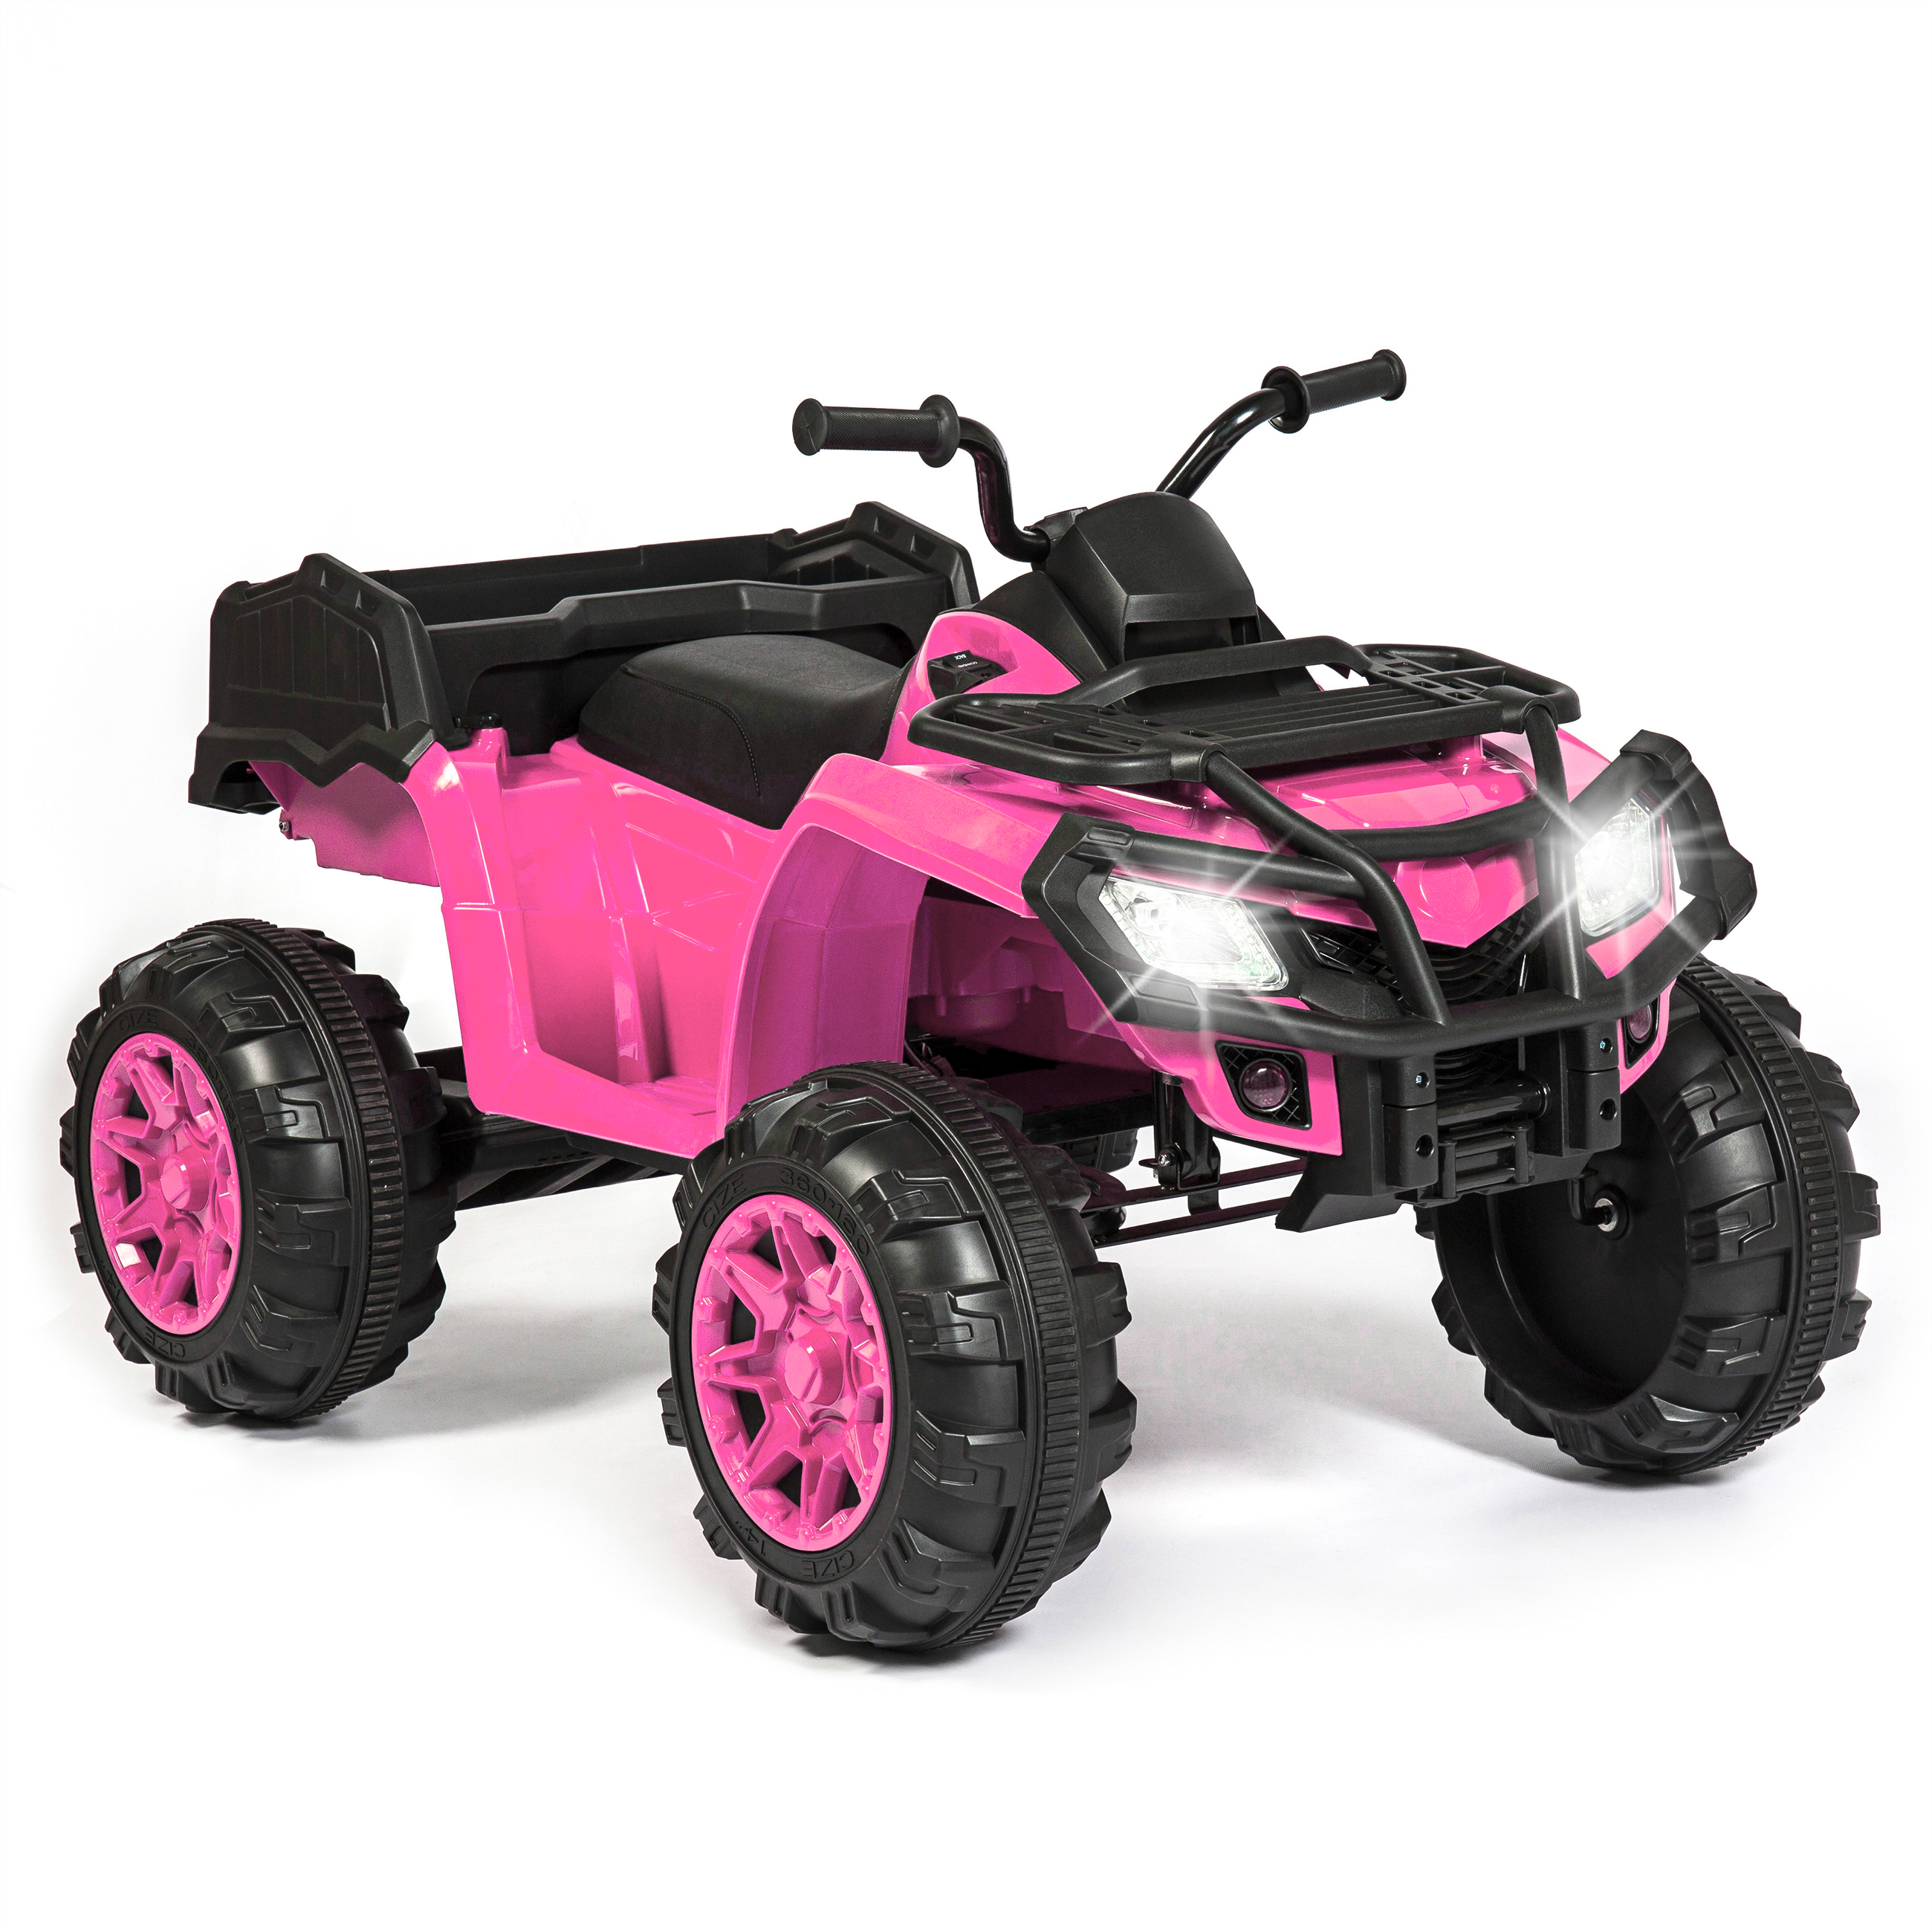 Best Choice Products 12V Kids Powered ATV Quad 4-Wheel Ride-On Car w/ 2 Speeds, Spring Suspension, MP3, Storage - Pink